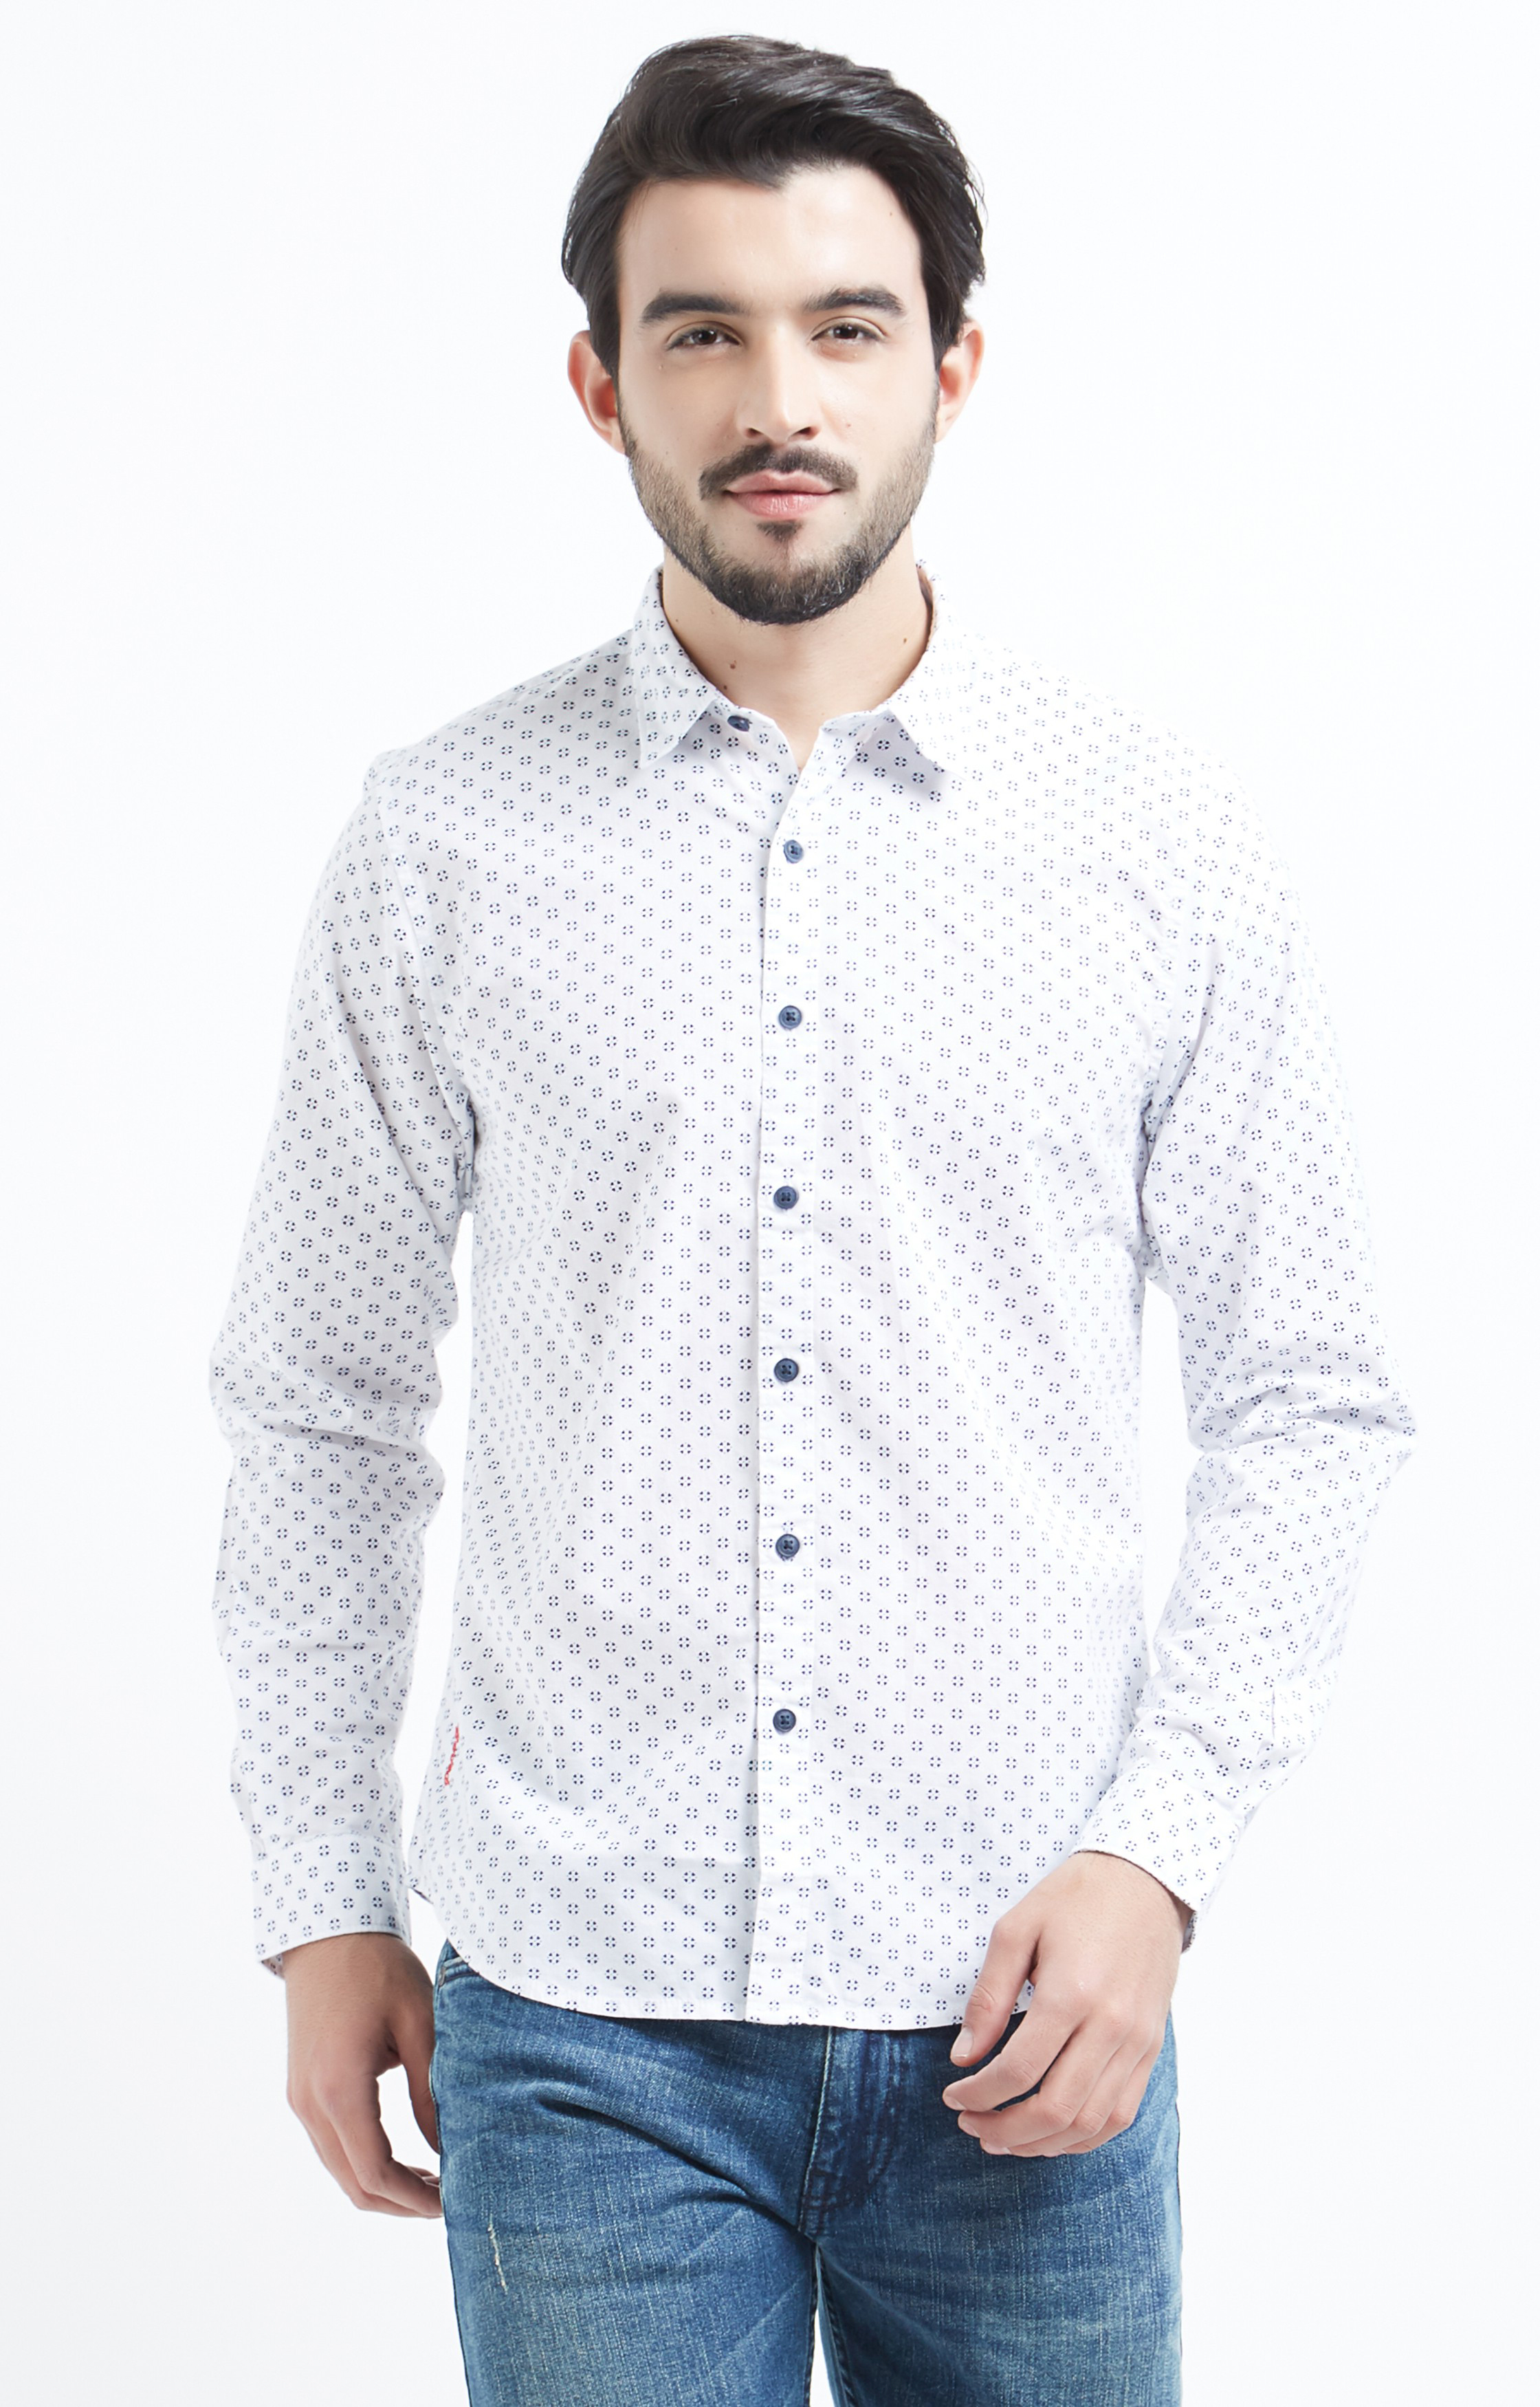 Pepe Jeans | White and Blue Printed Casual Shirt